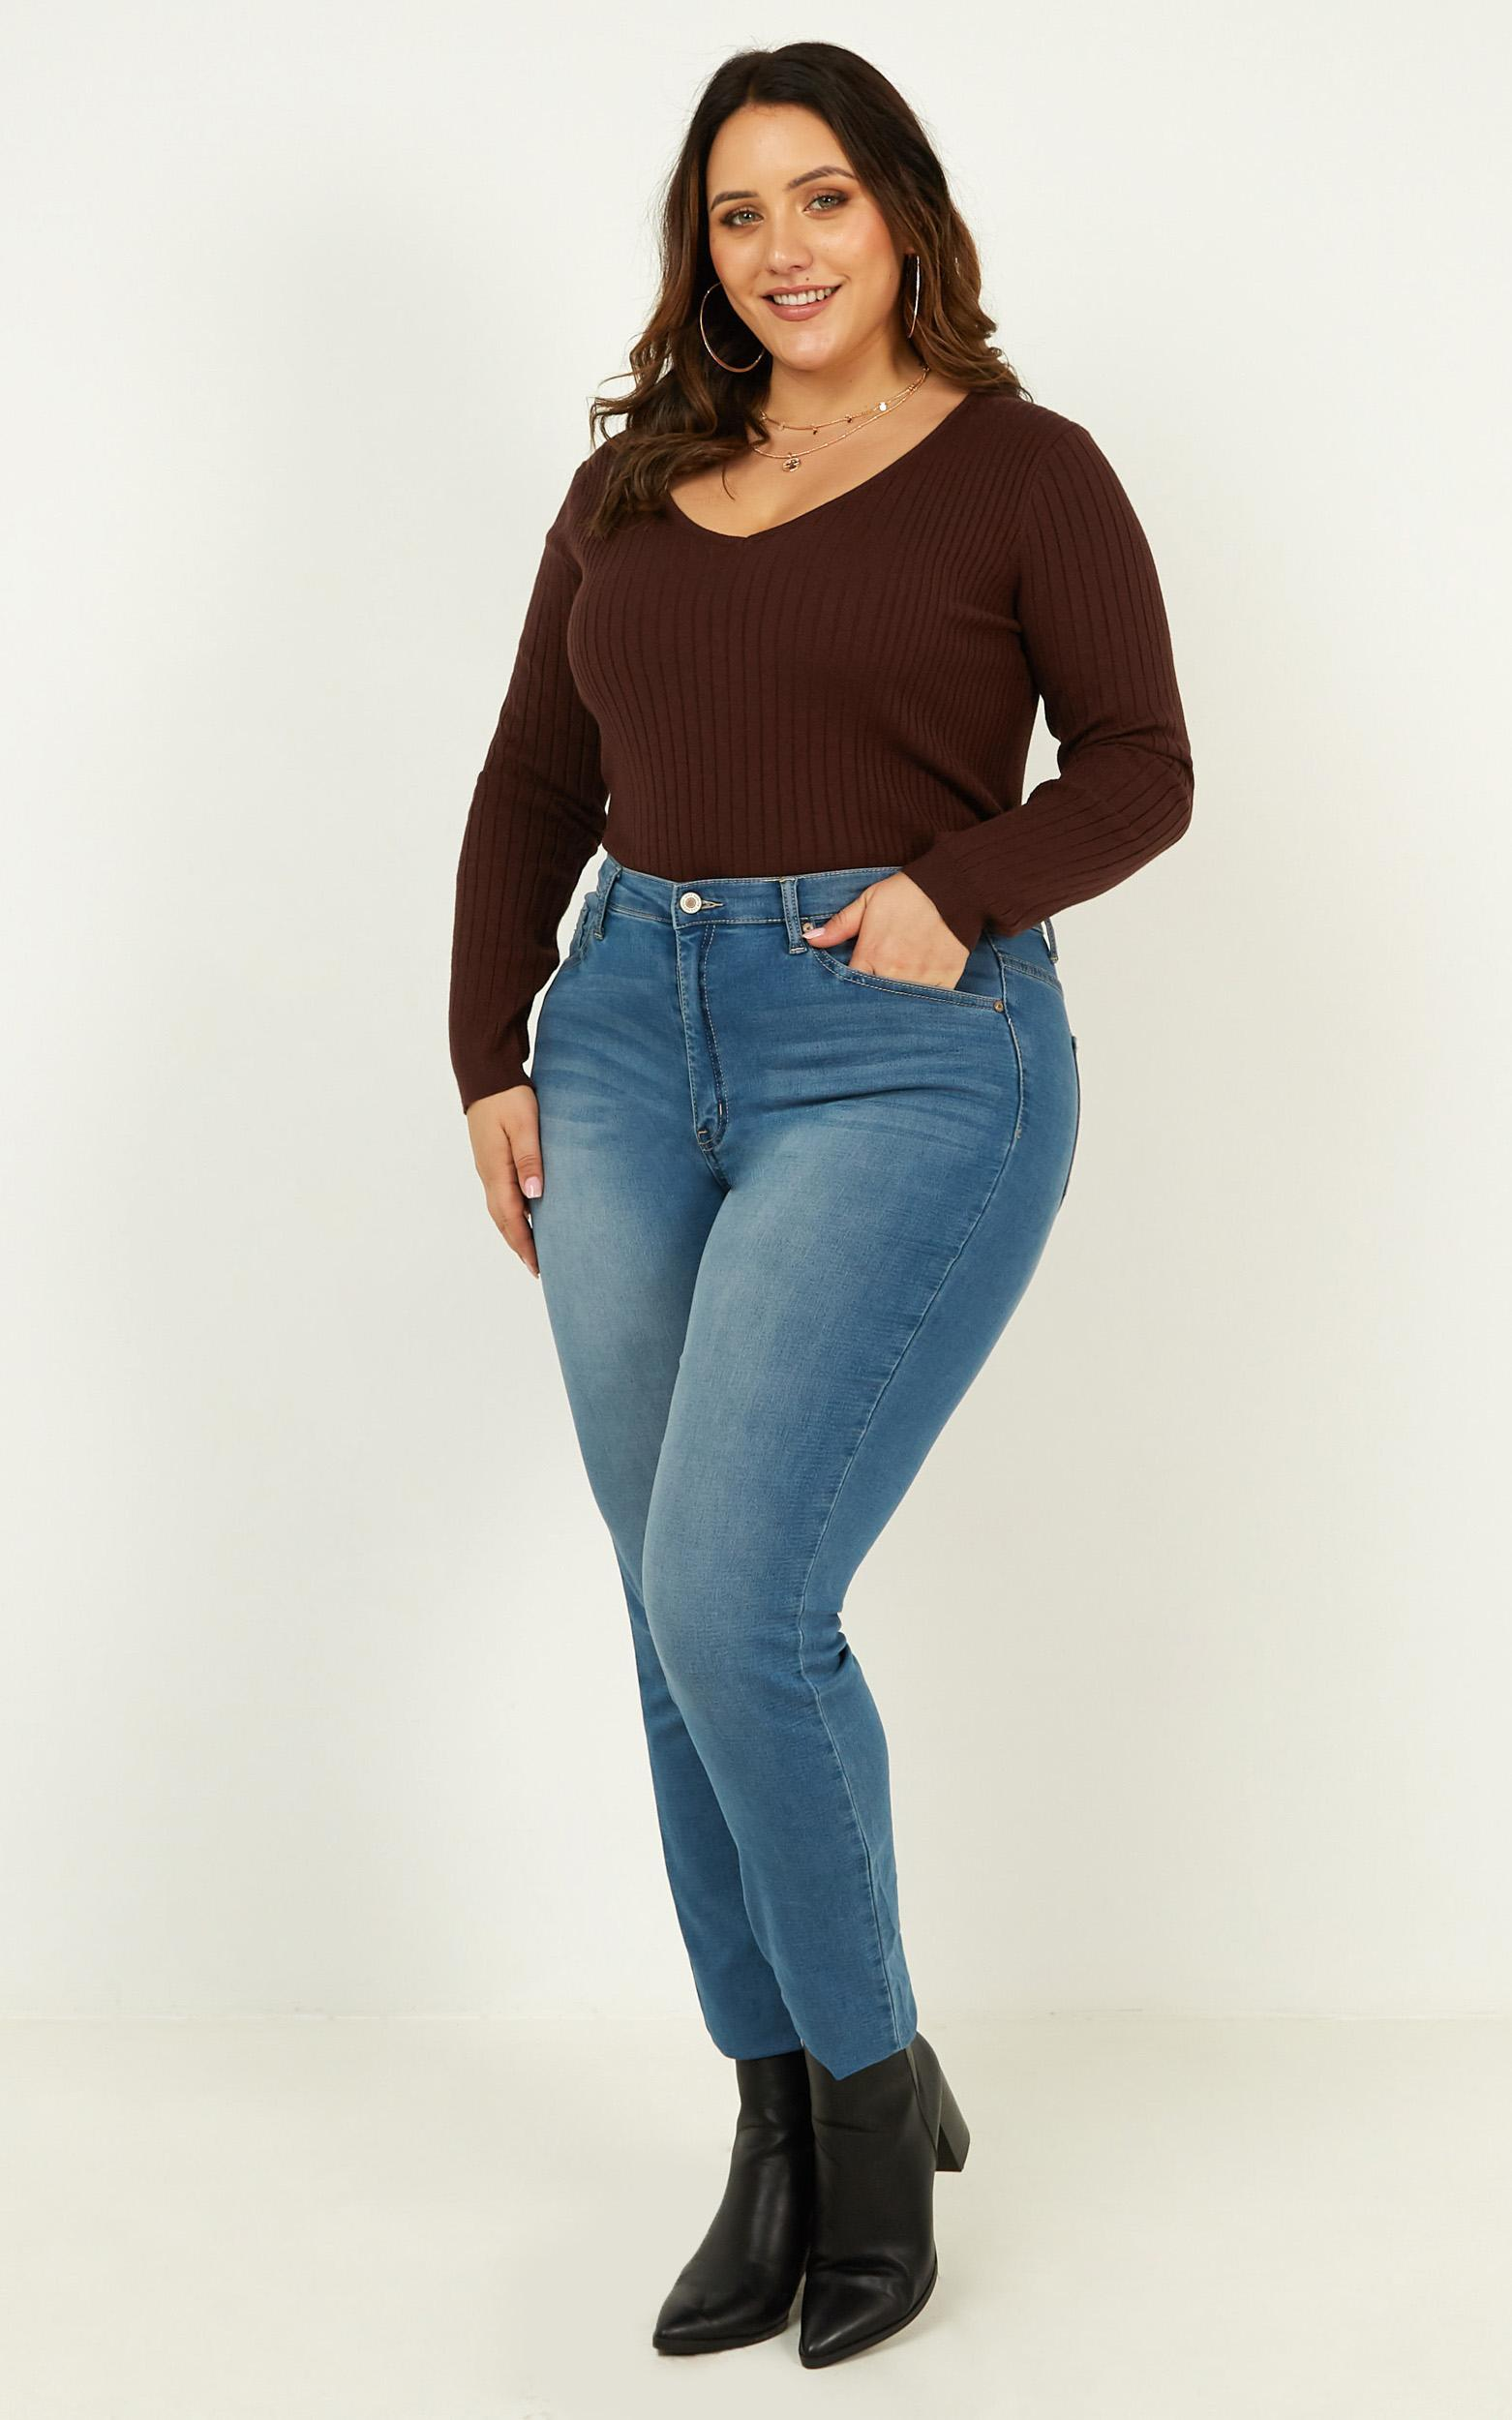 Lovely Love Knit Top In chocolate - 20 (XXXXL), Brown, hi-res image number null